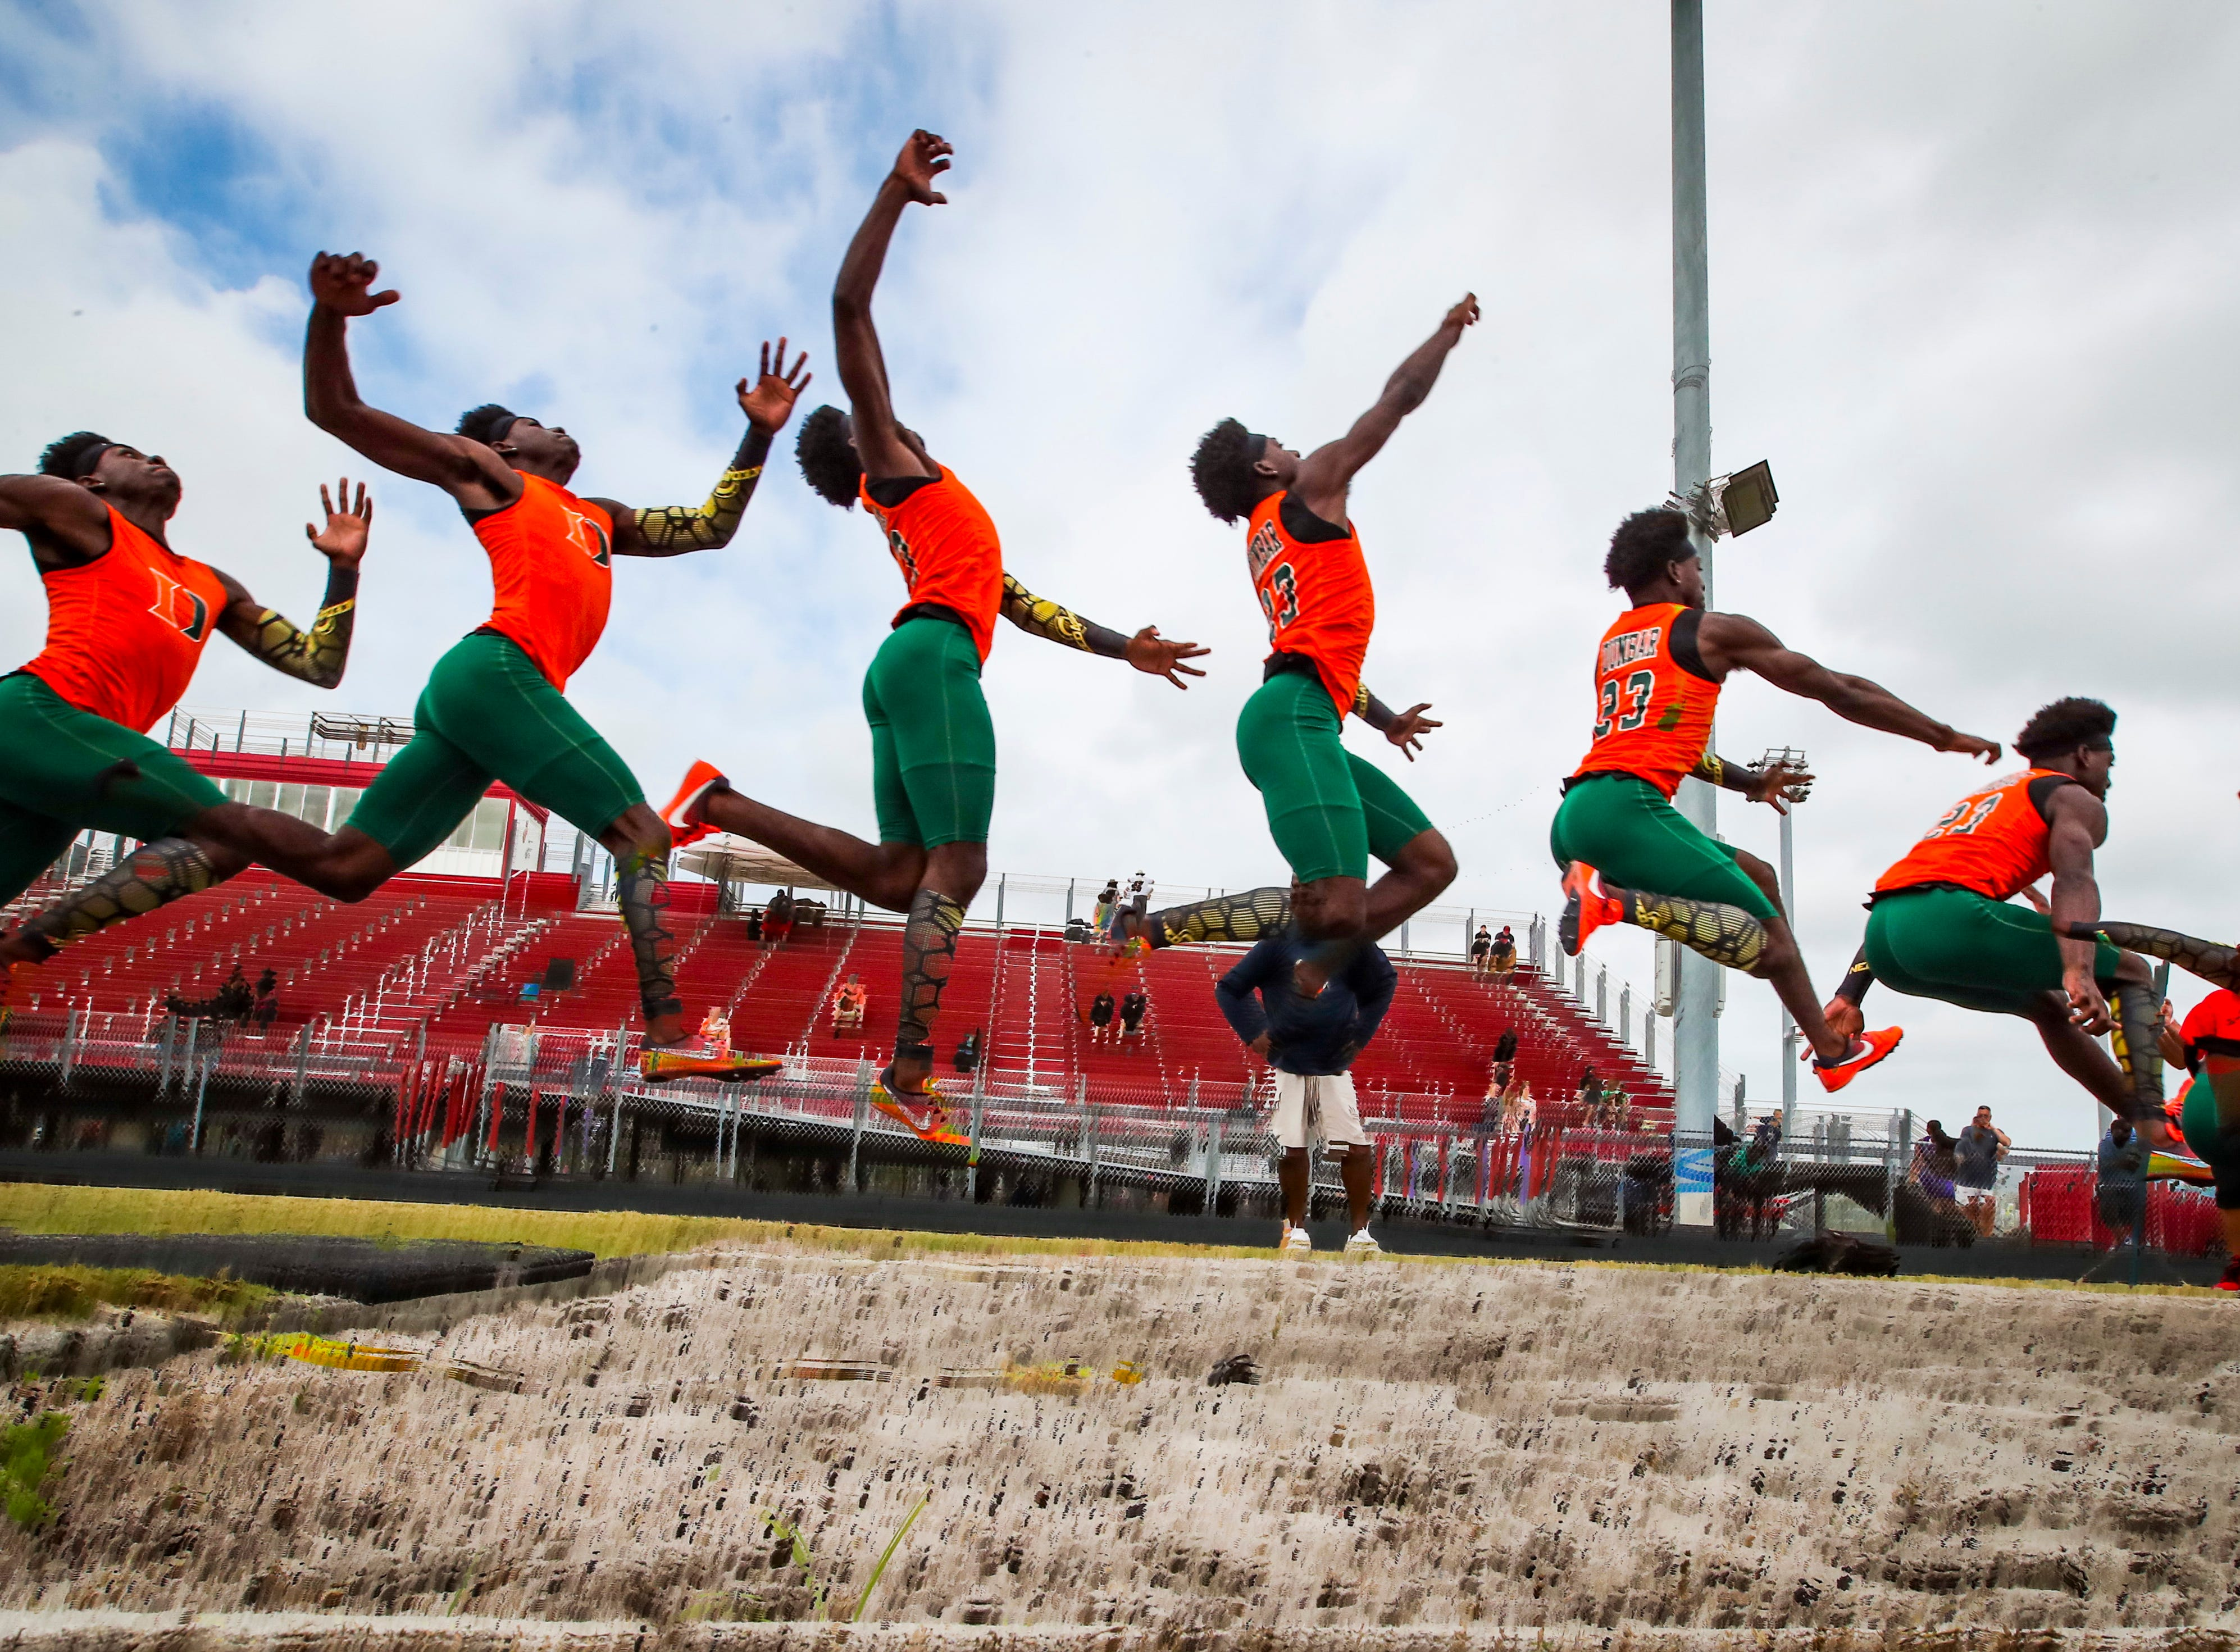 Wolfpack Invitational track meet at South Fort Myers, March 15, 2019. The boys long jump, Tionte Hatcher, a senior at  Dunbar.